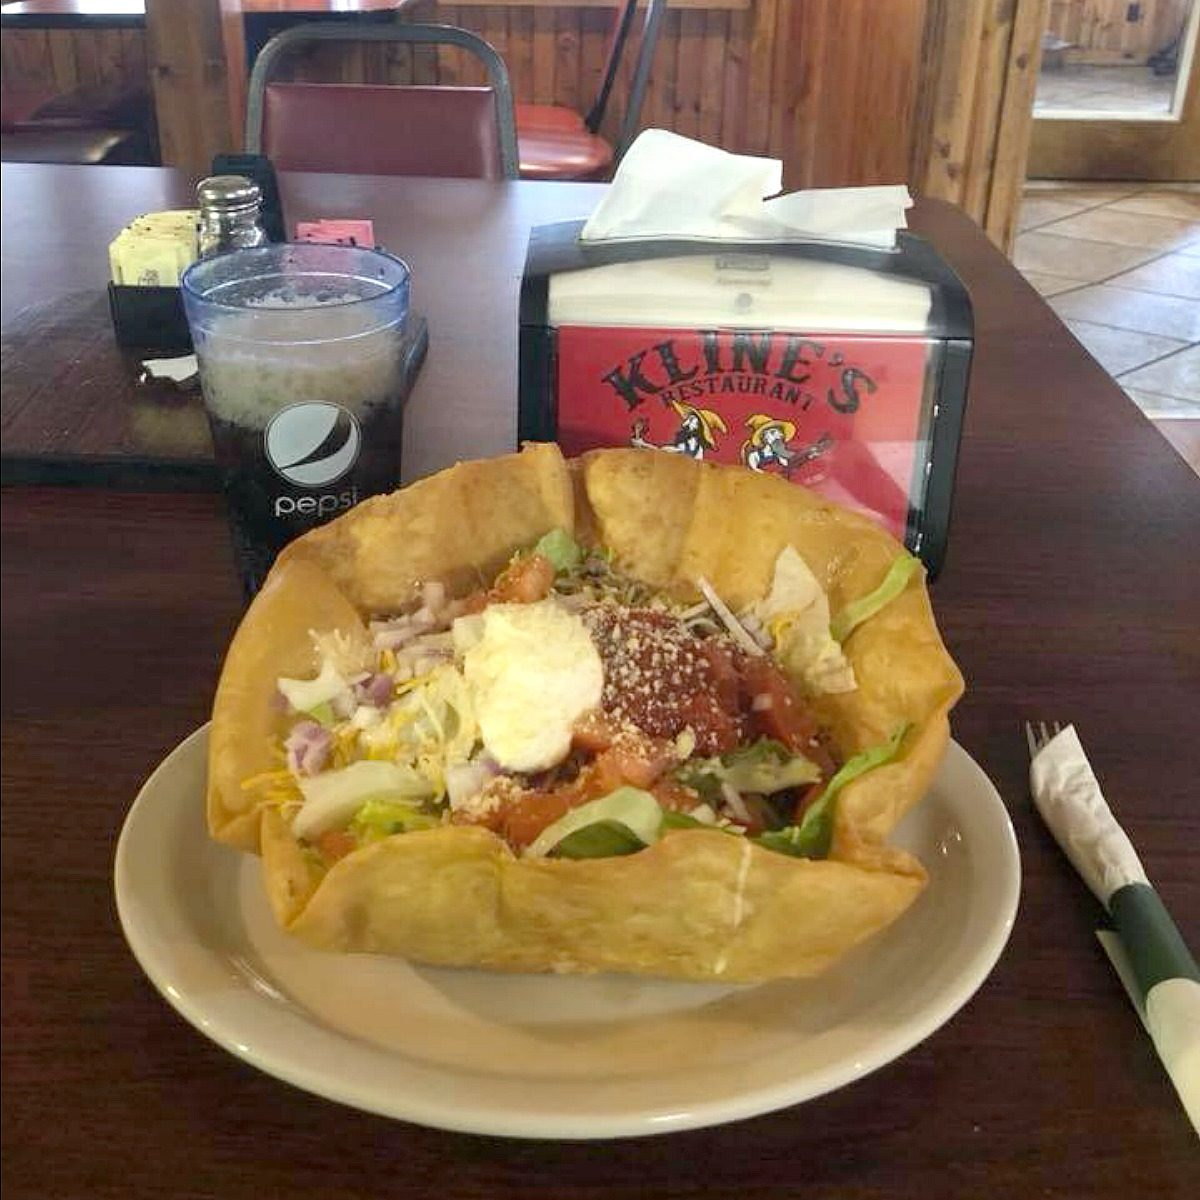 Taco salad at Kline's Restaurant